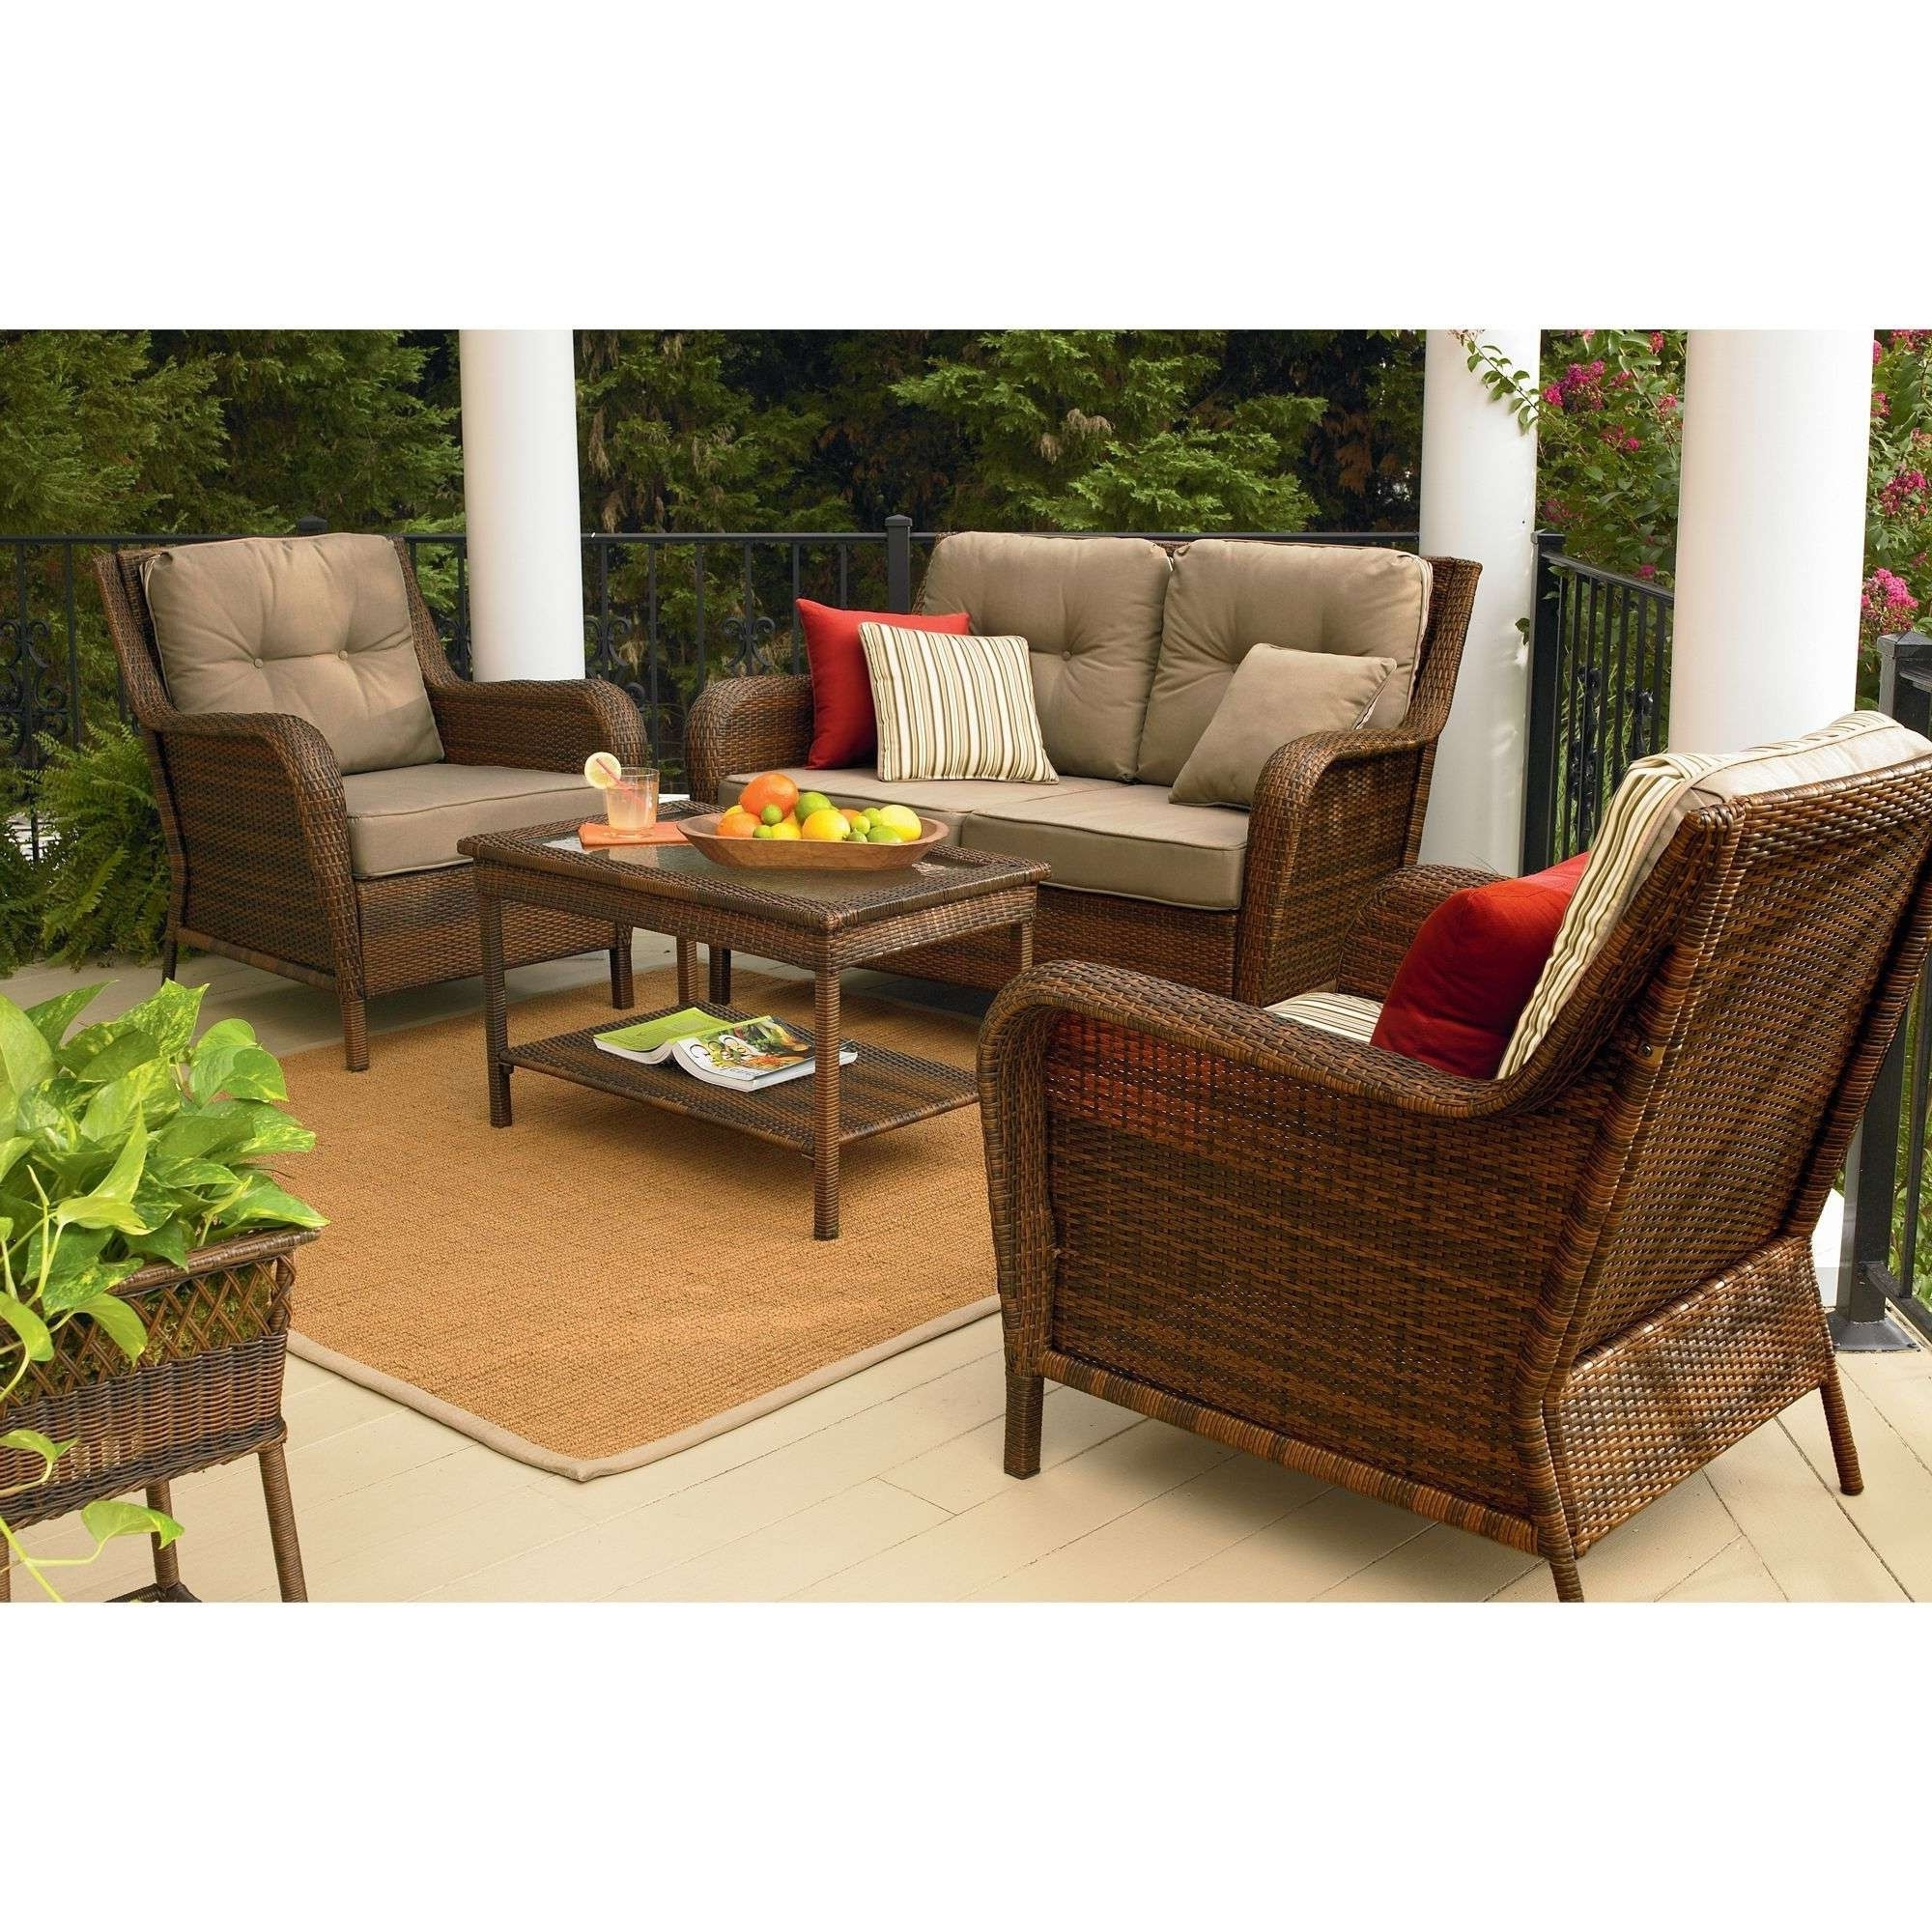 Patio Conversation Sets At Sears With Fashionable Sears Patio Furniture Comfortable Sears Wicker Furniture Sets Patio (View 16 of 20)